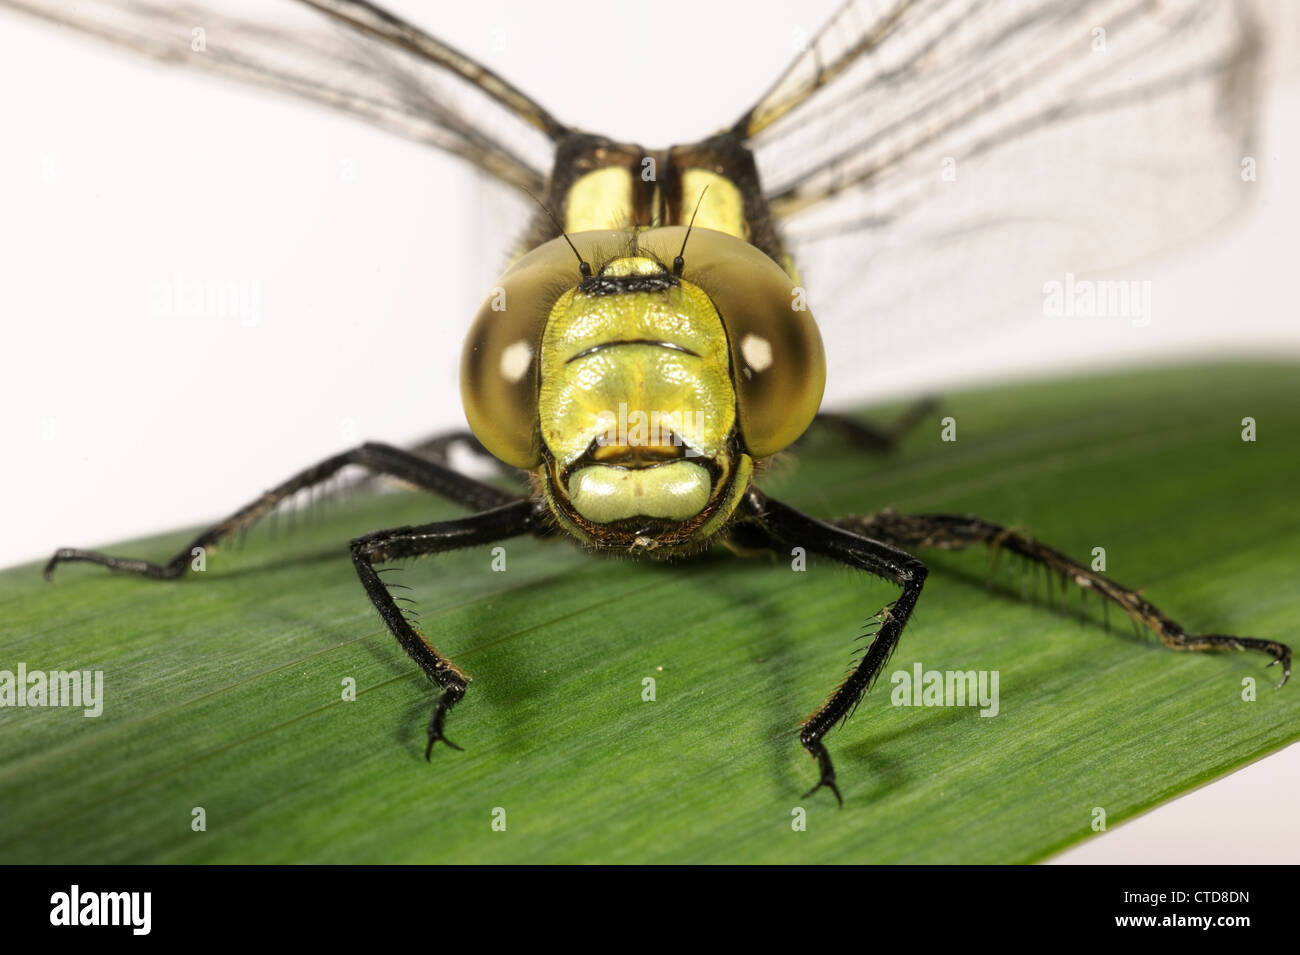 Southern hawker dragonfly Aeshna cyanea newly hatched adult head & eyes - Stock Image